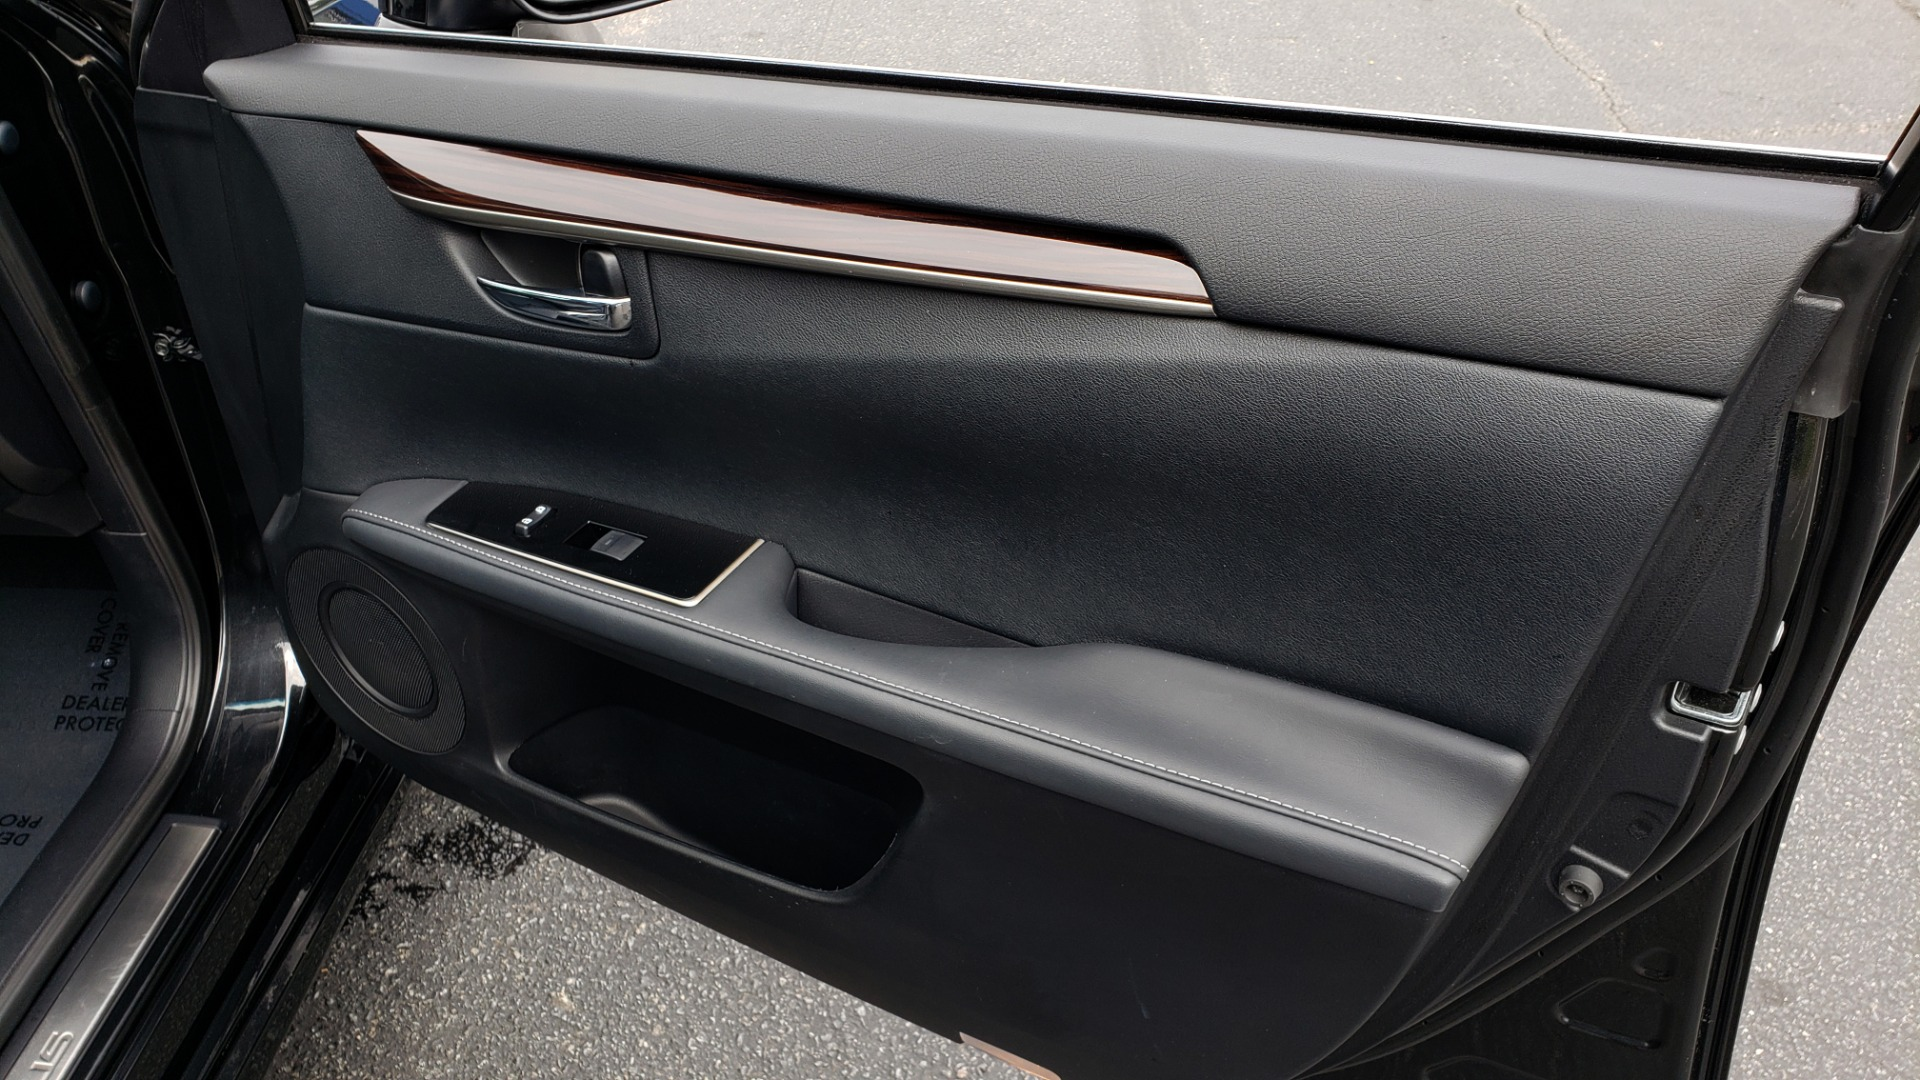 Used 2017 Lexus ES 350 PREMIUM / SUNROOF / PARK ASST / BSM / VENT SEATS / REARVIEW for sale Sold at Formula Imports in Charlotte NC 28227 60